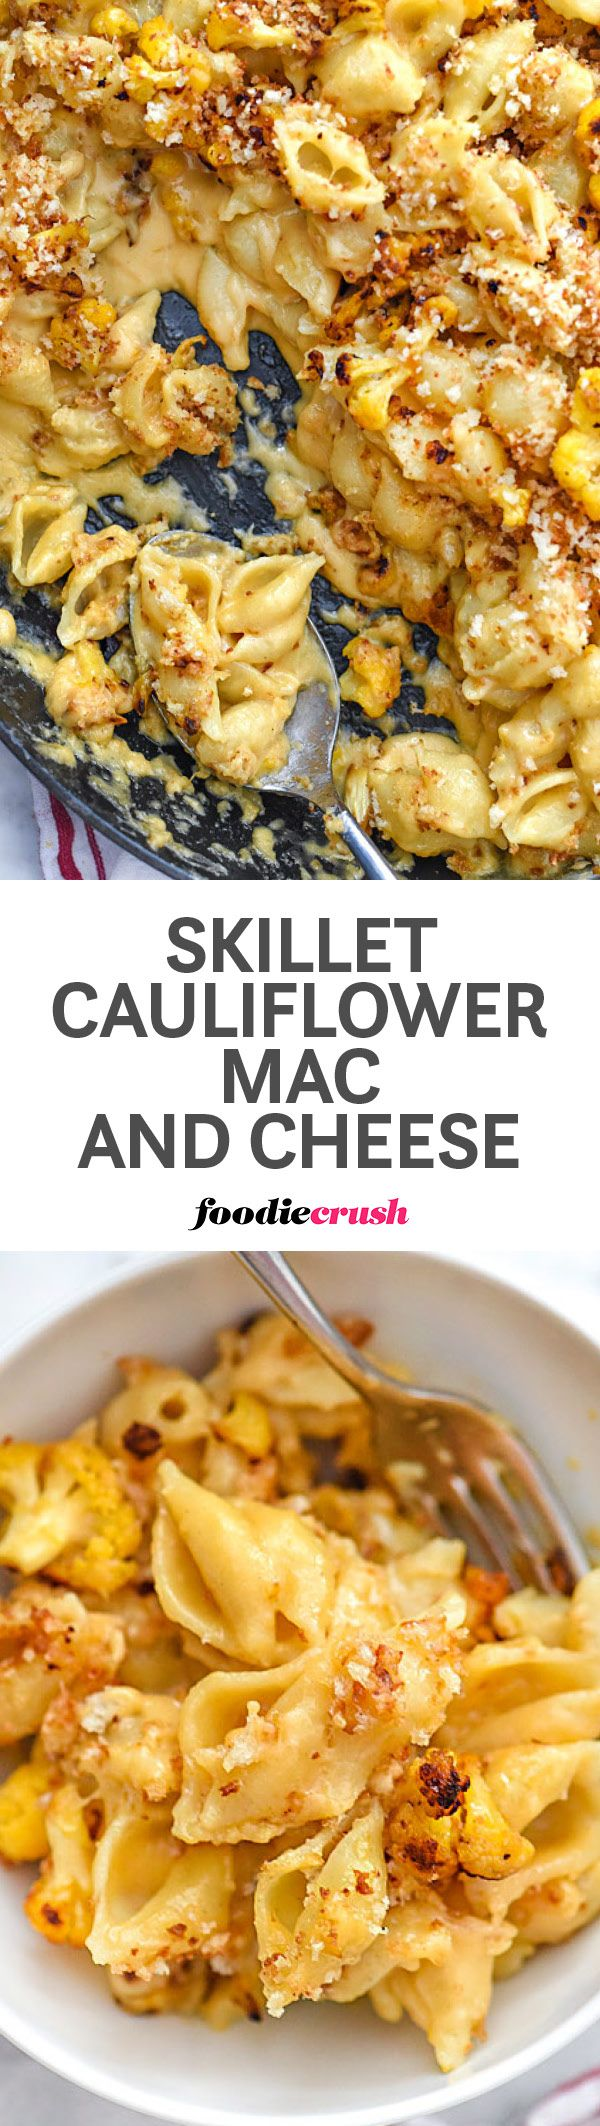 This ultimate comfort food recipe gets a veggie bump with caramelized cauliflower added to this smooth and velvety cheesy pasta for a new family favorite | foodiecrush.com #macandcheese #comfortfood #cauliflower